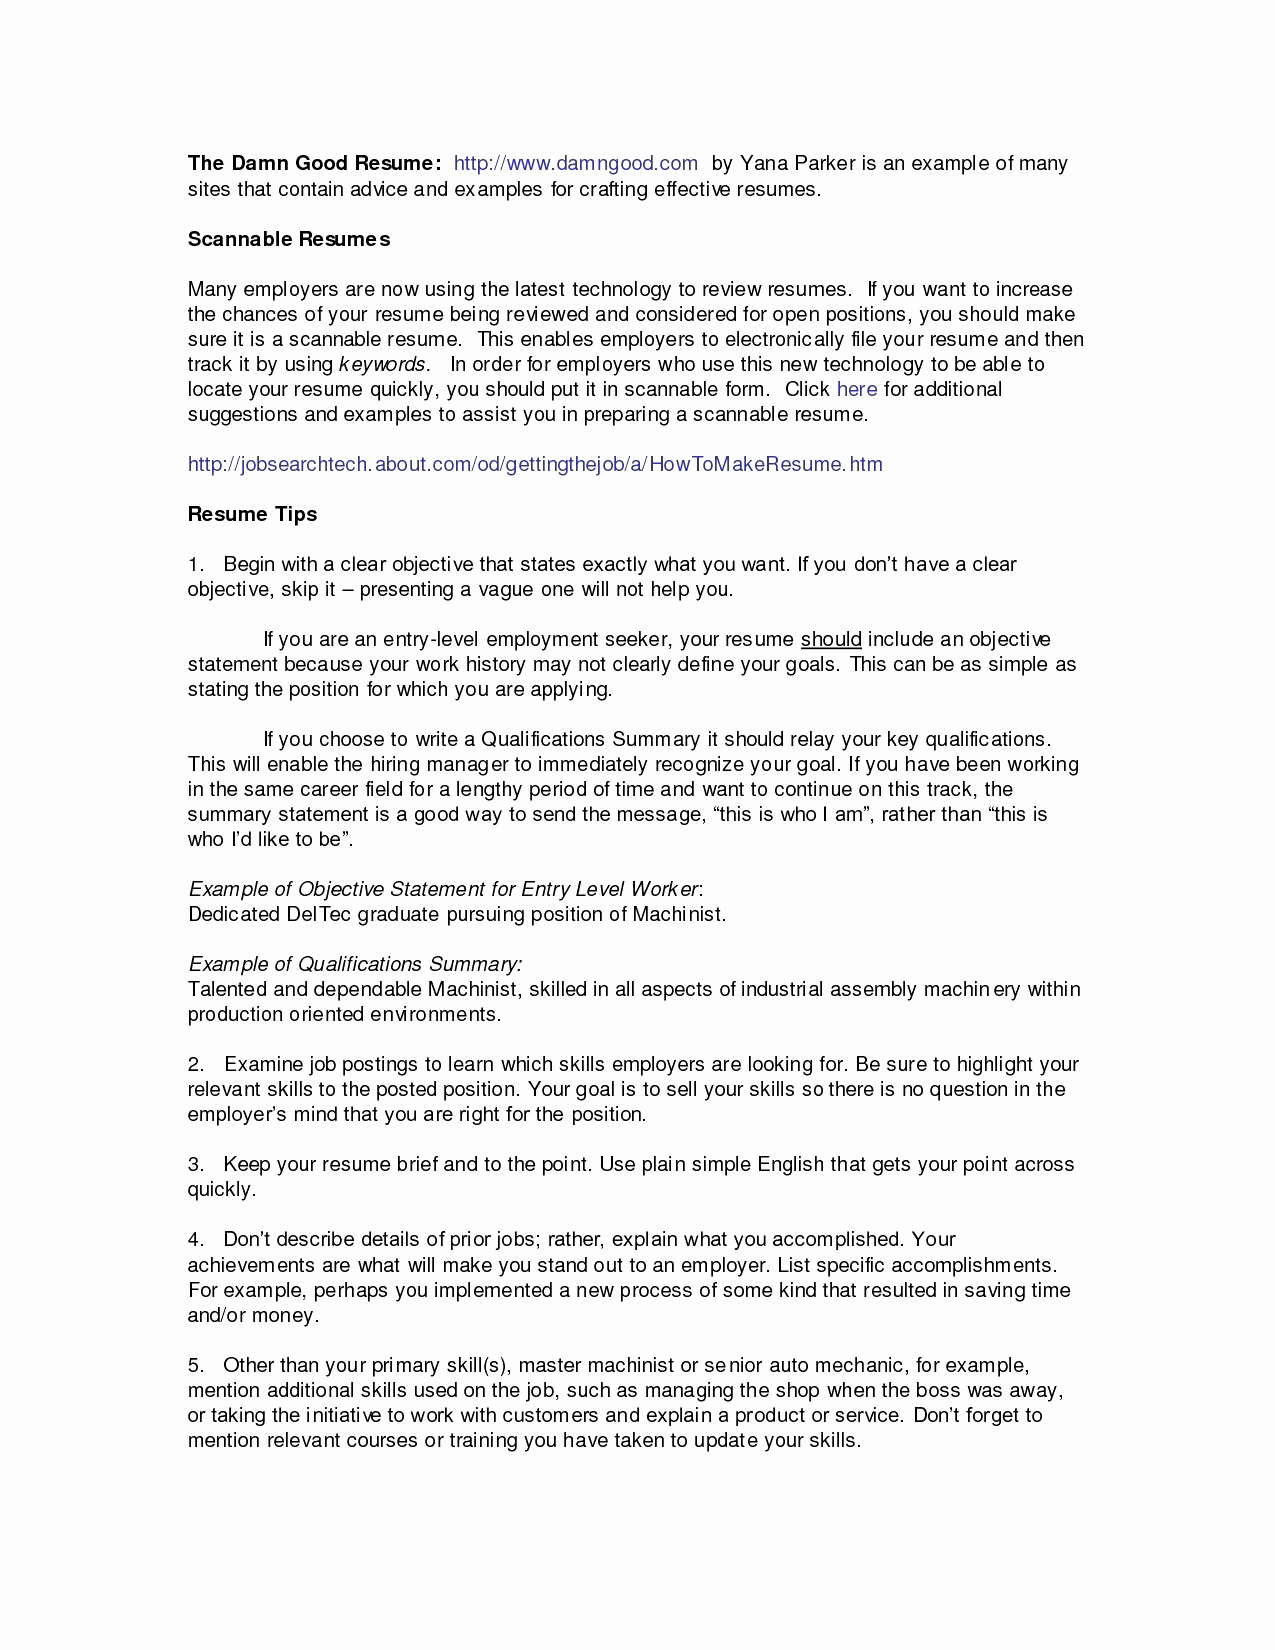 Cease and Desist Letter Non Compete Template - Document Design Ideas All About Document Design Ideas